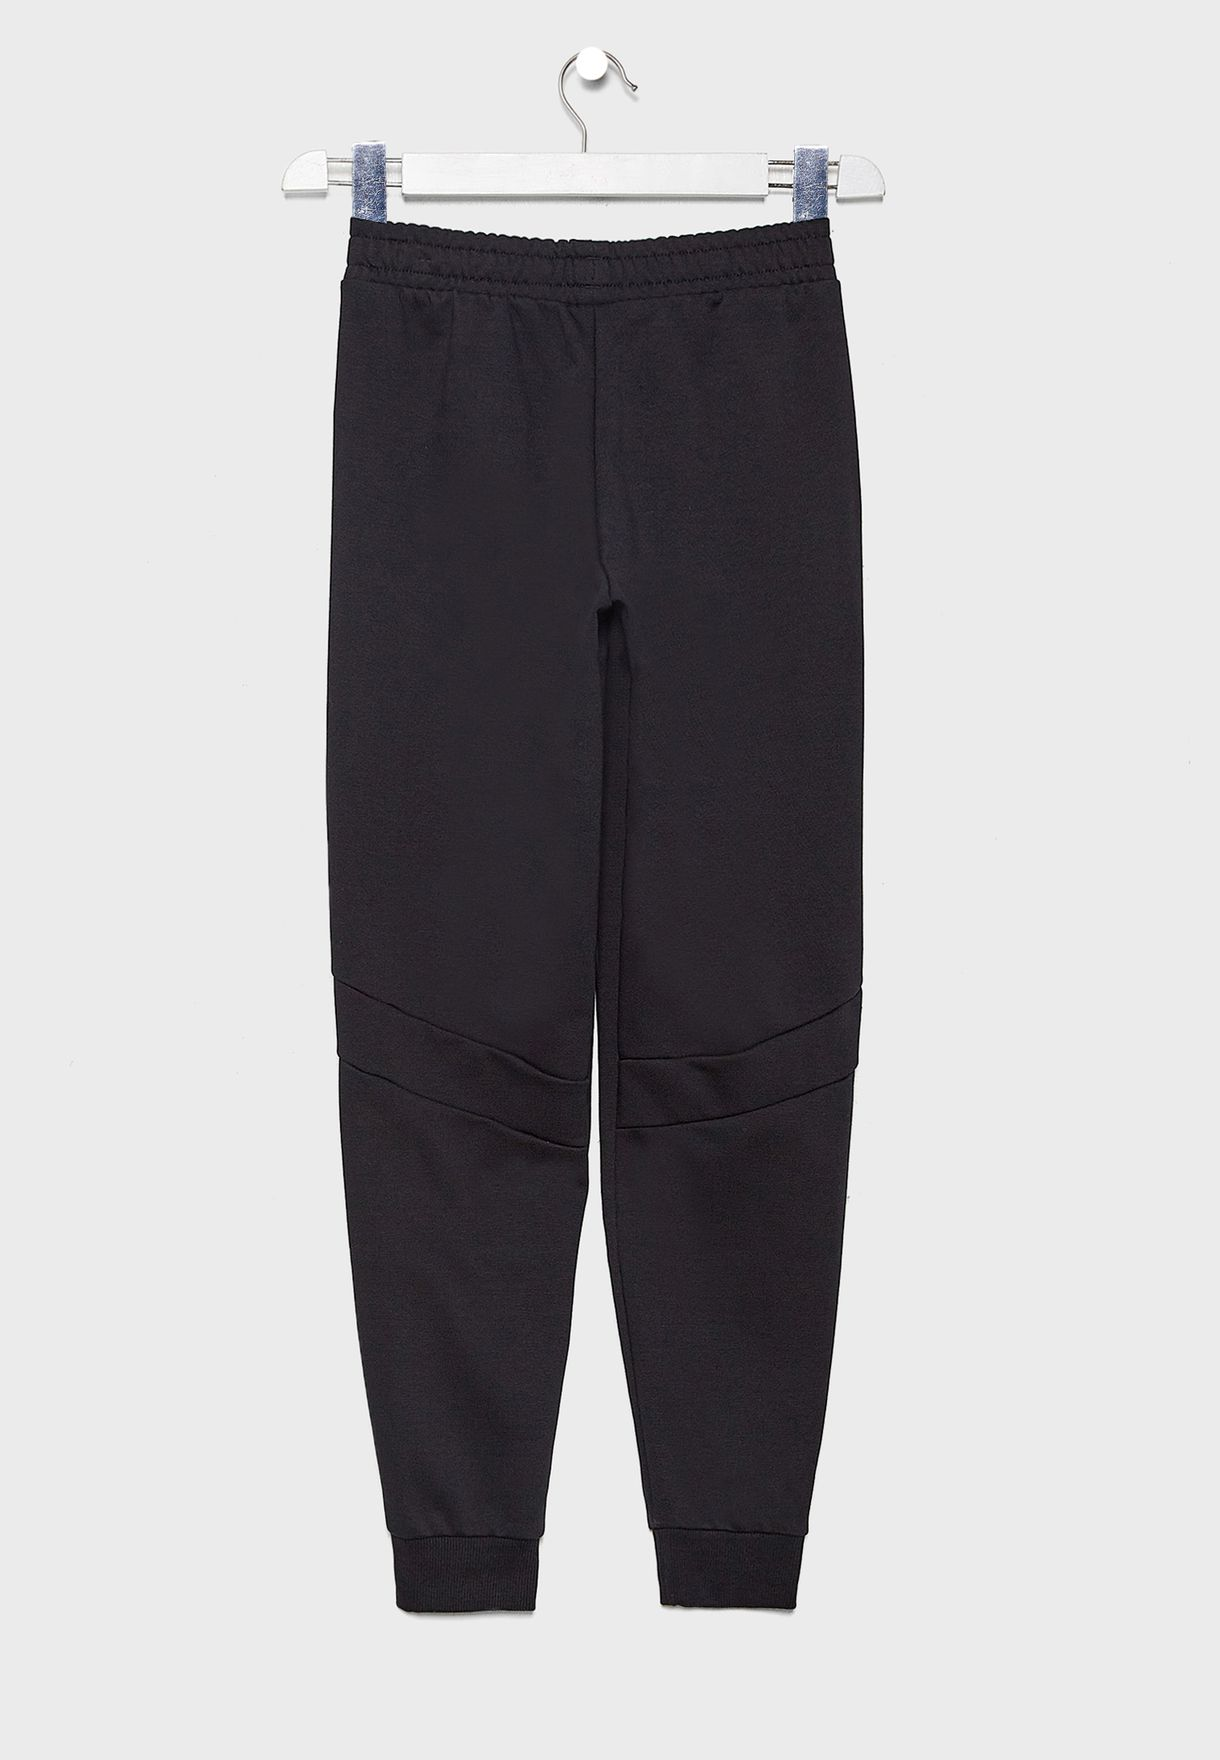 Kids Active Sports Sweatpants